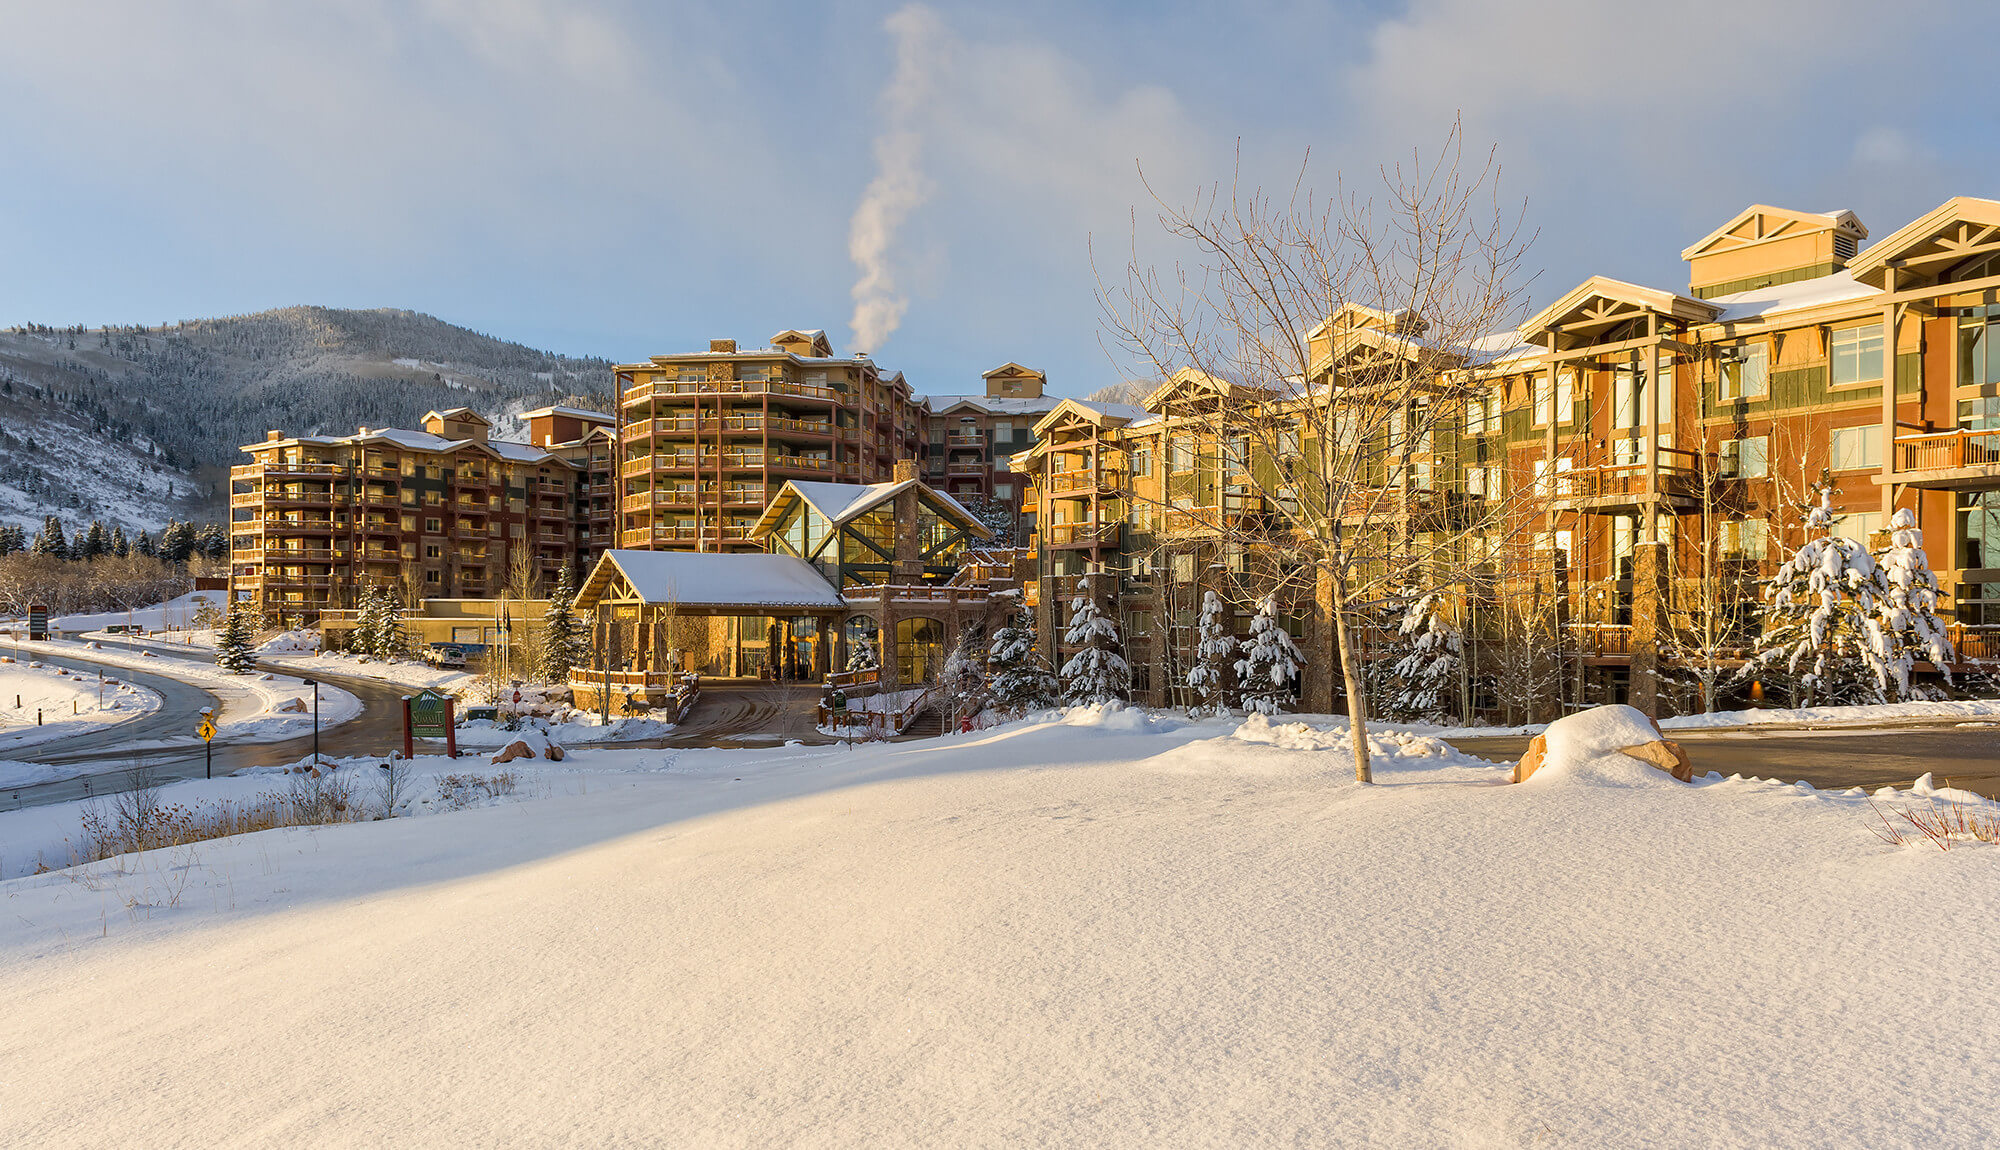 Wintry scene outside Park City resort | Westgate Park City Resort & Spa